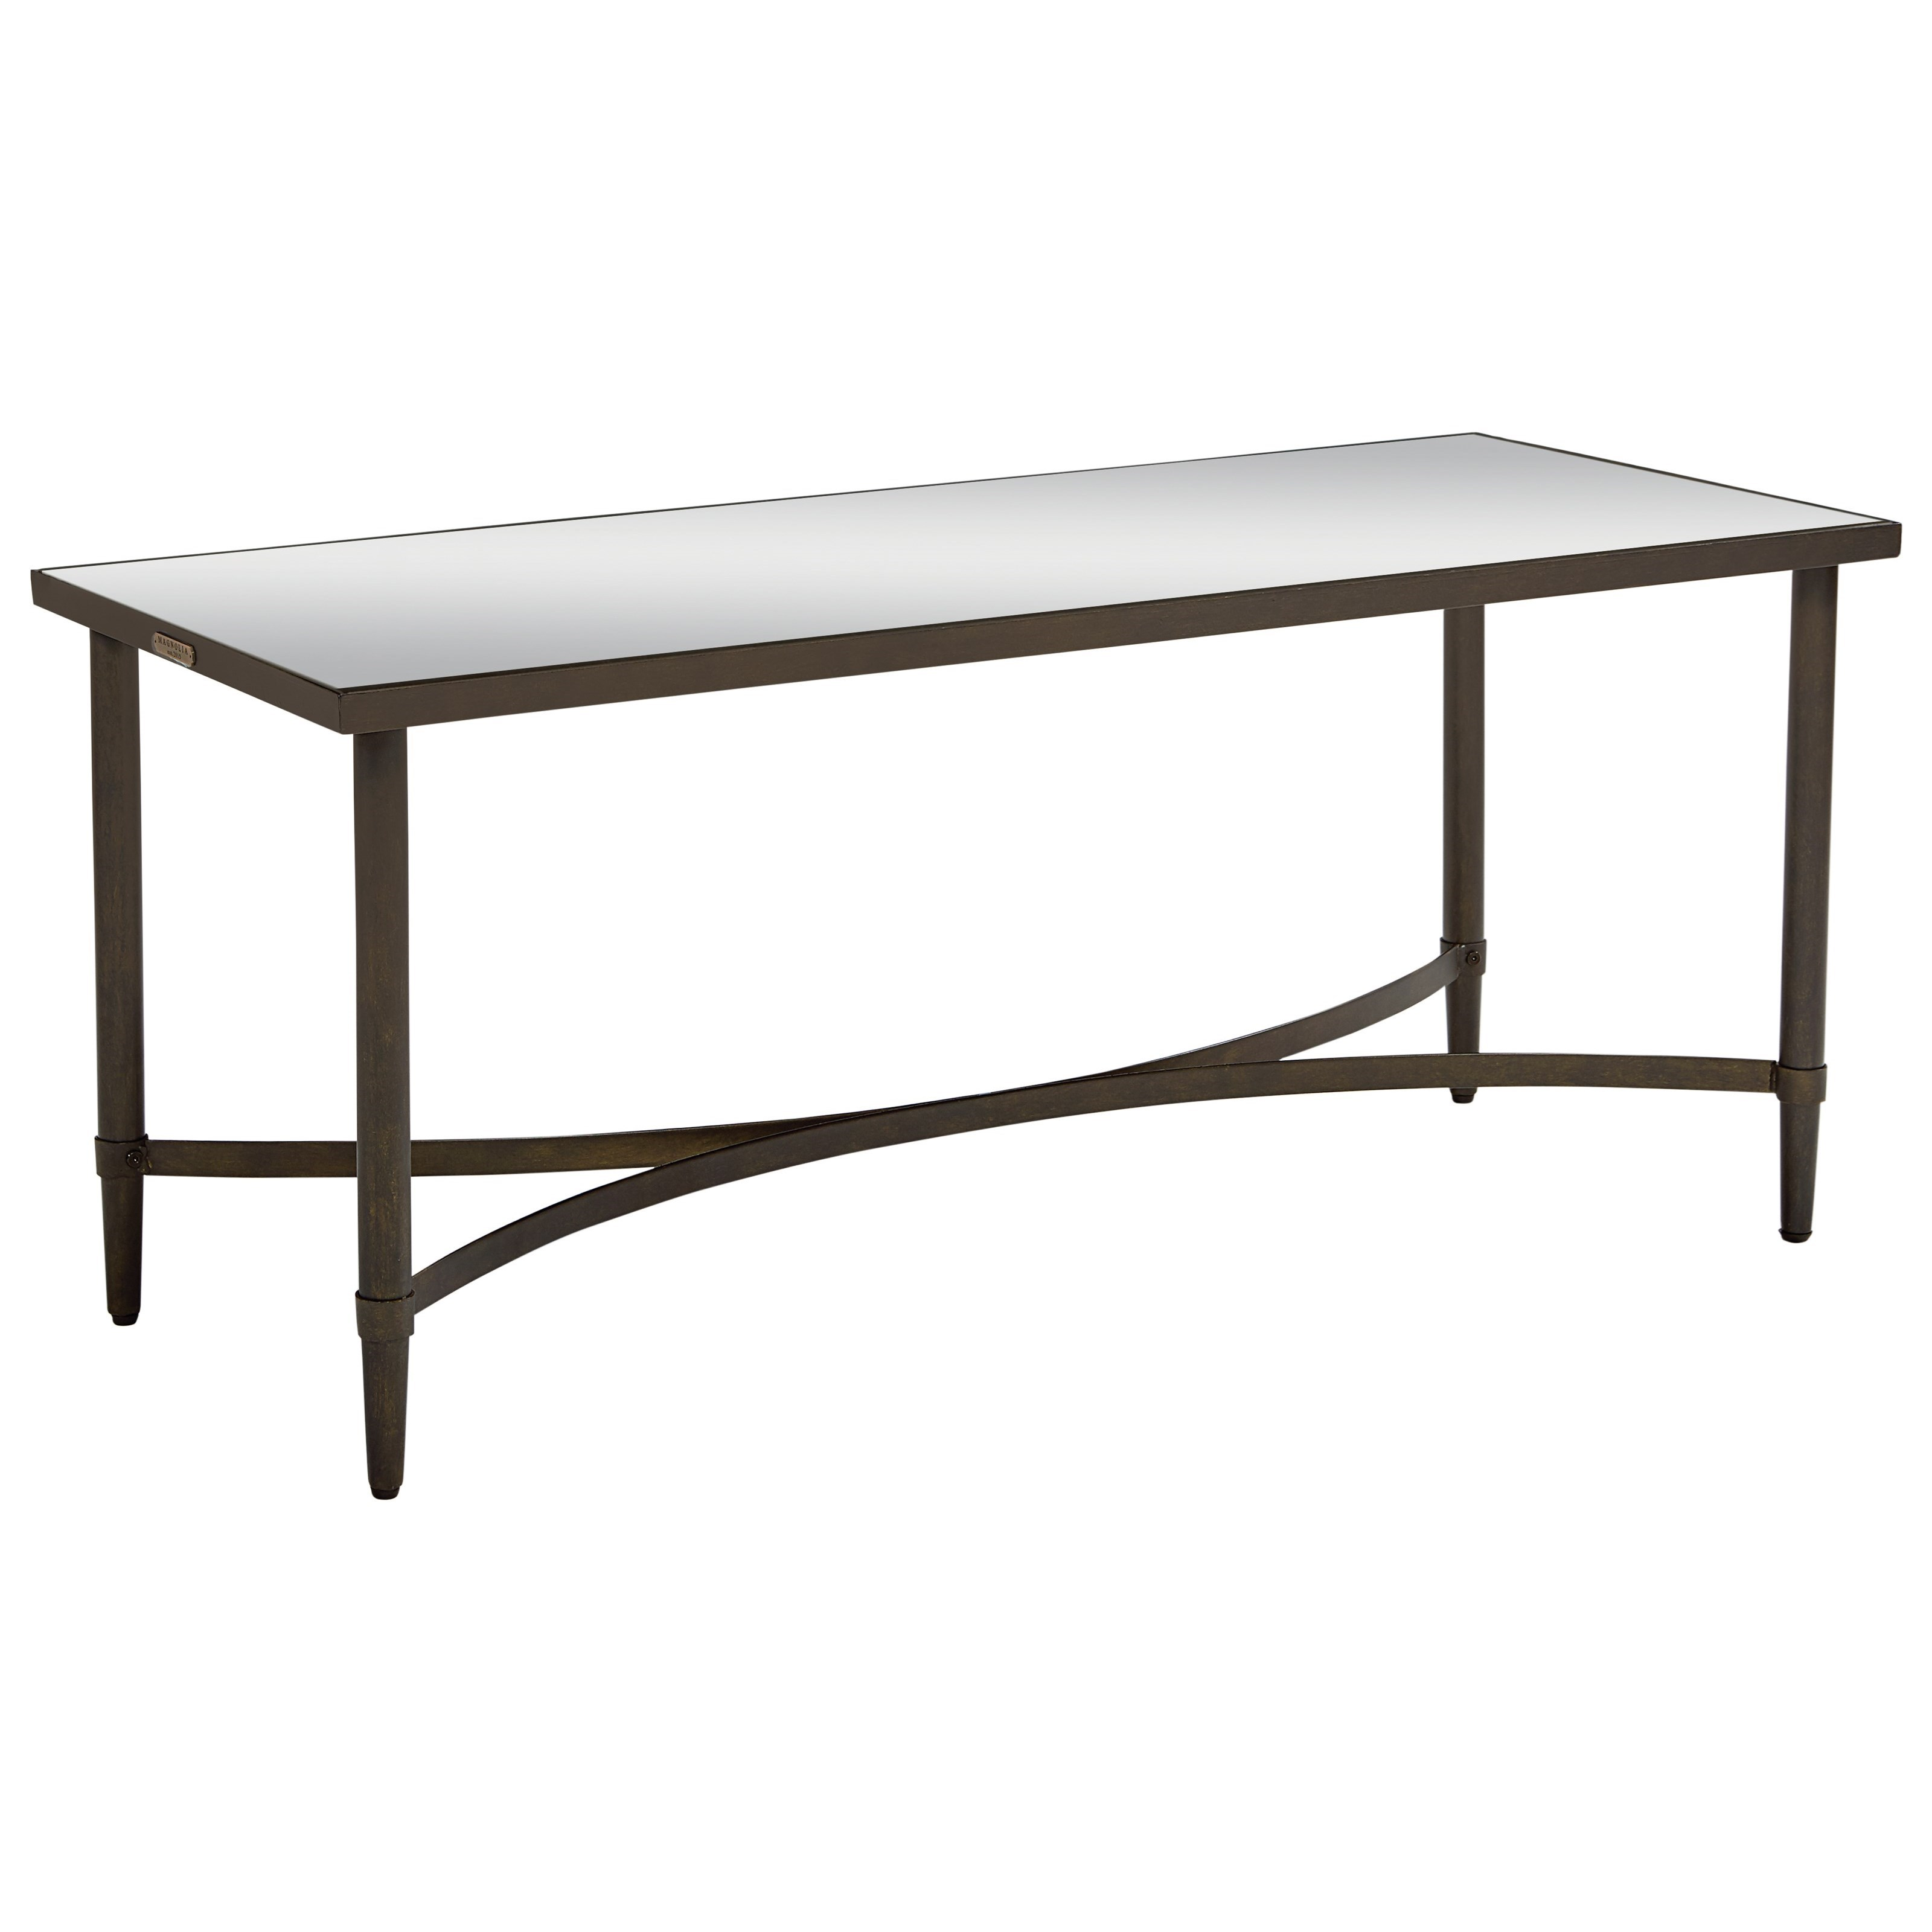 Magnolia Home by Joanna Gaines Accent Elements Coffee Table - Item Number: 8030101W